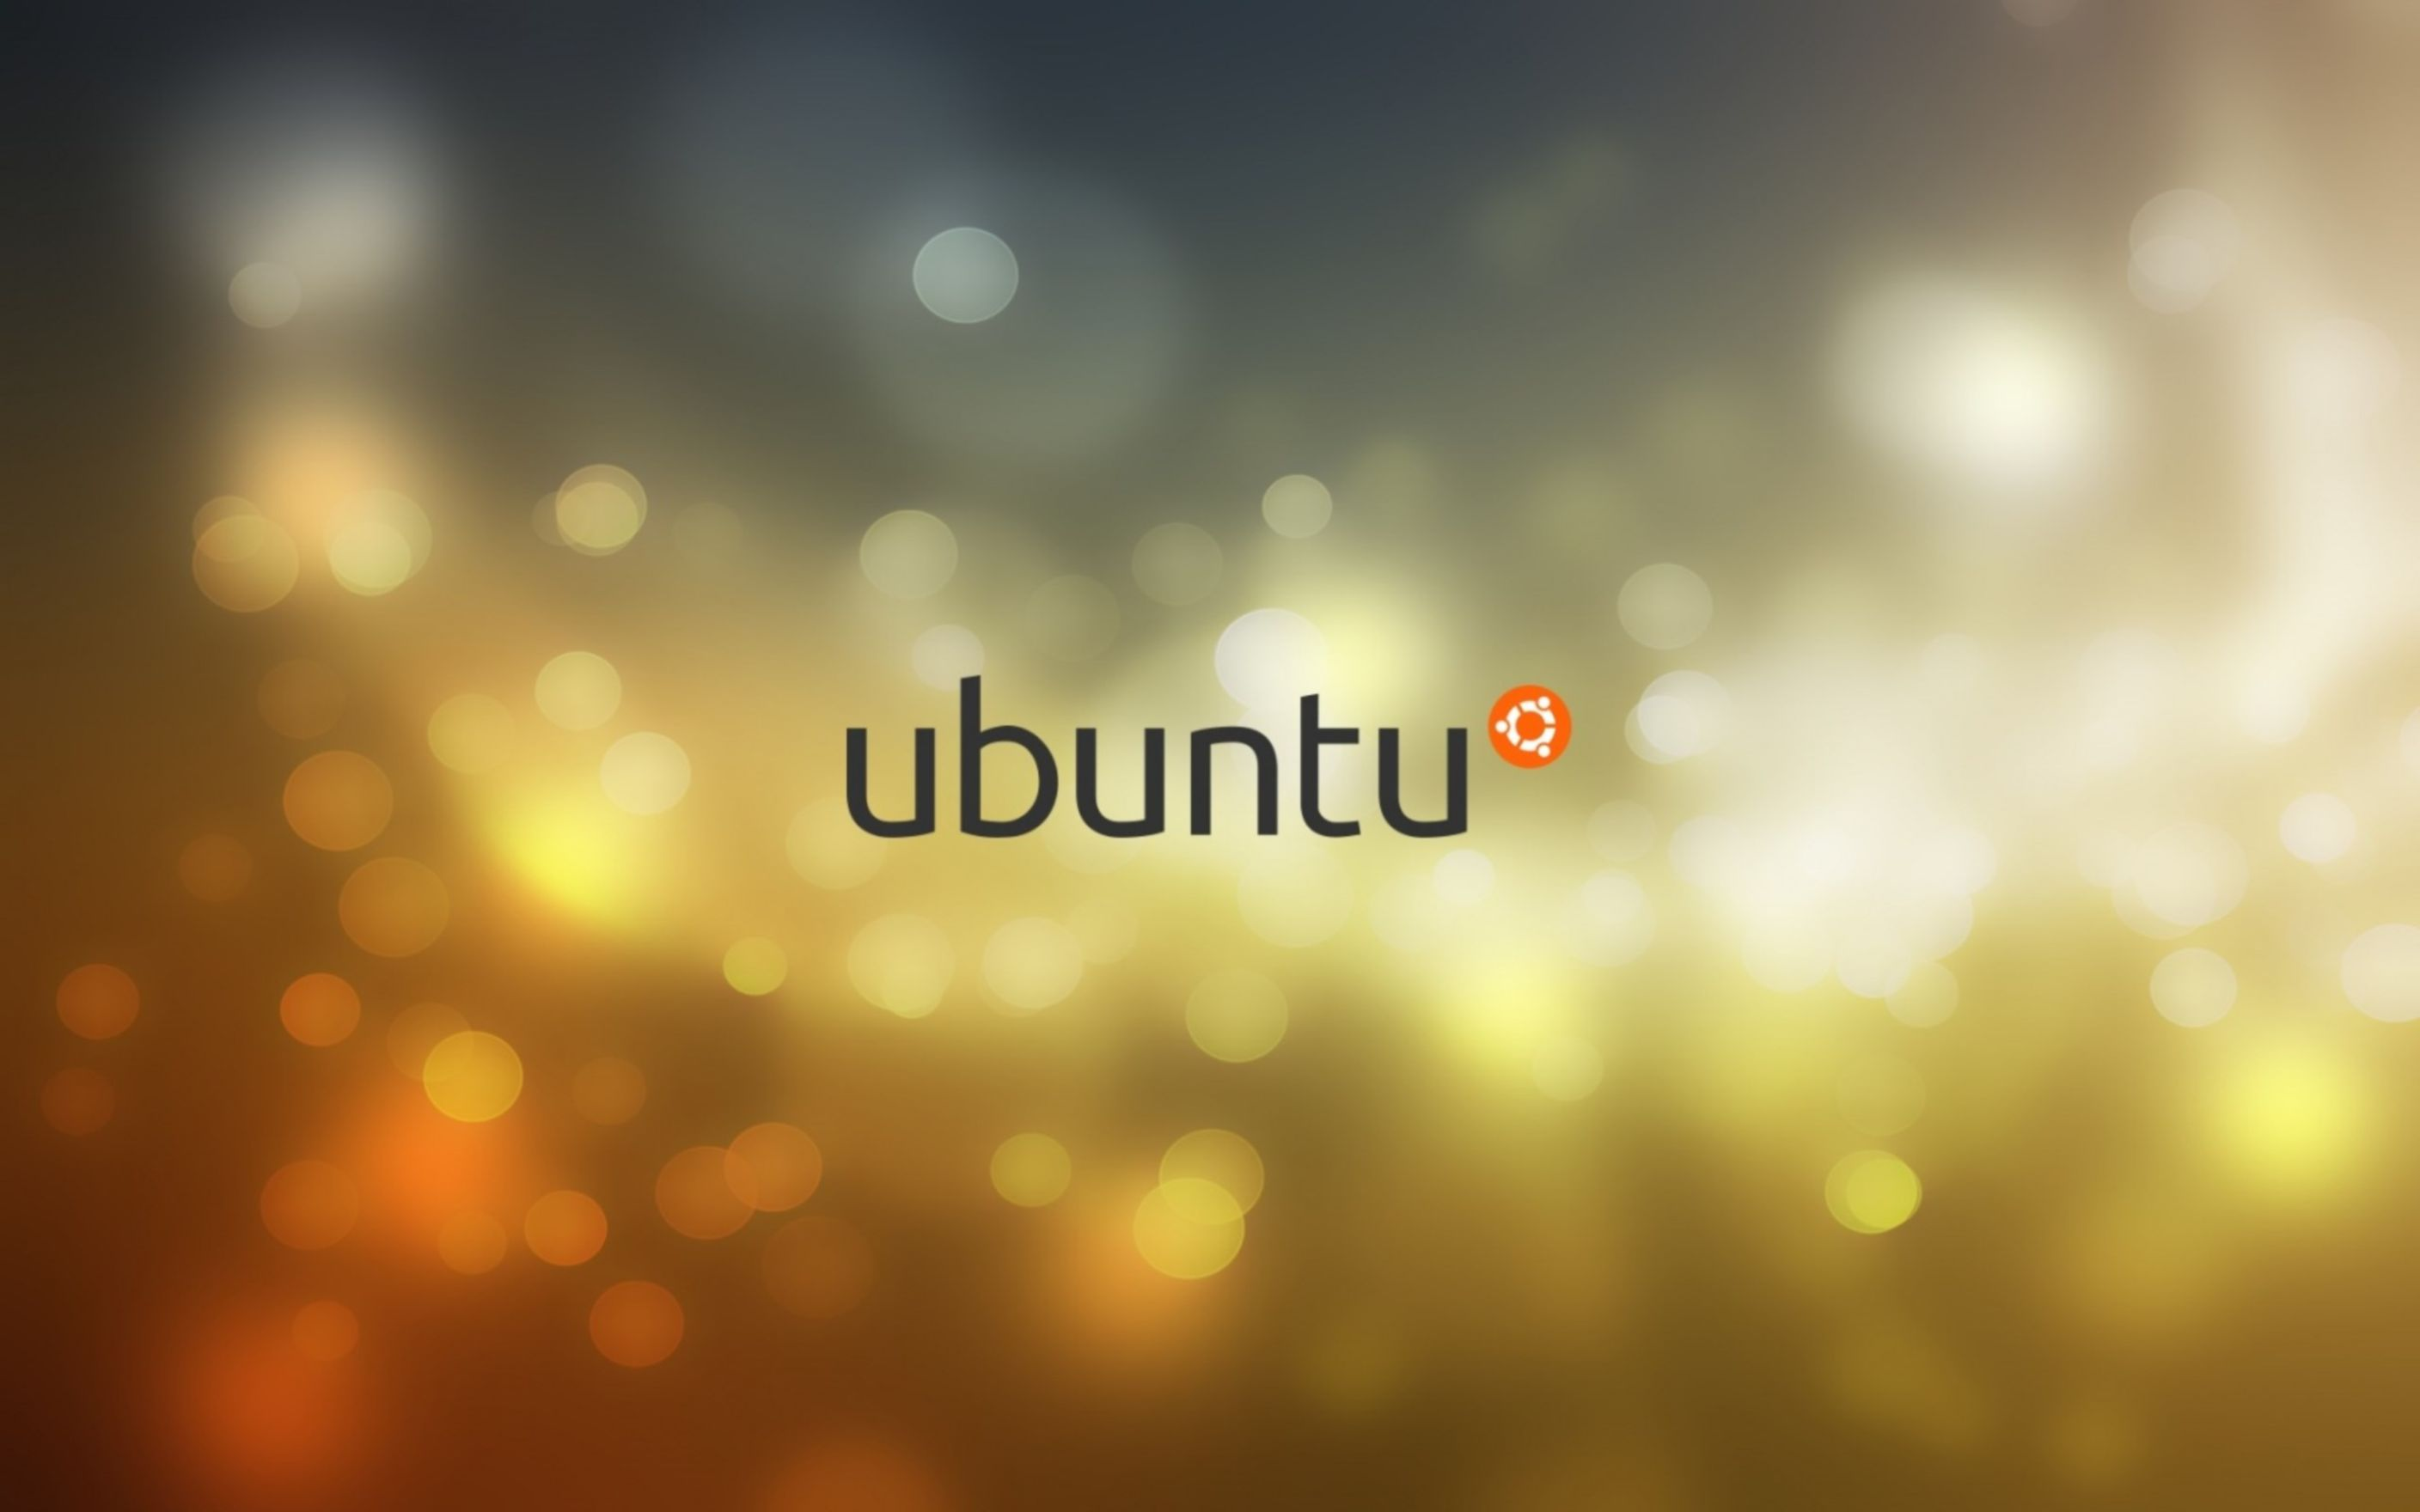 Download free HD Ubuntu HD Wallpaper, image